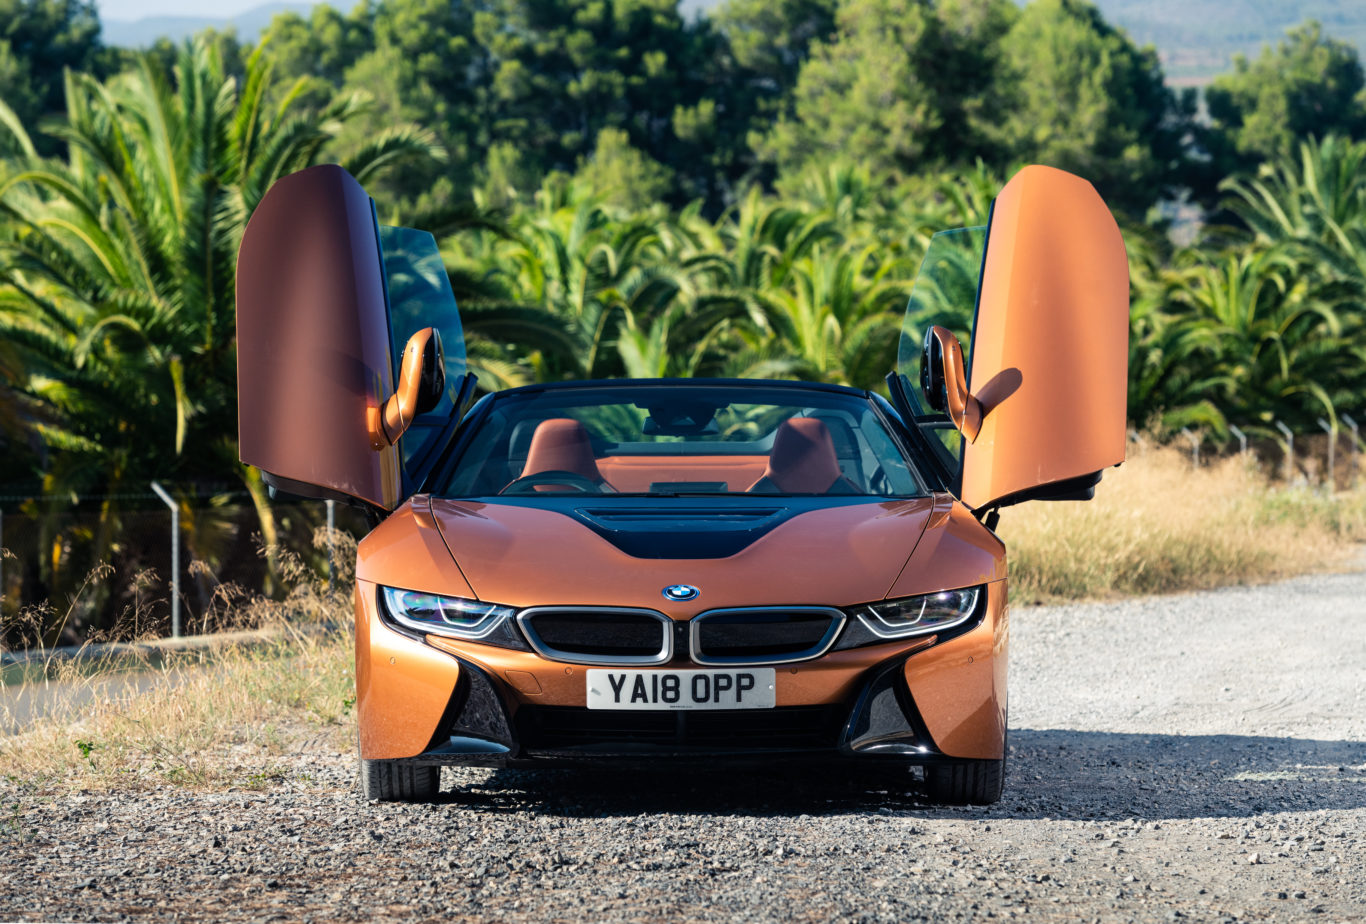 The Roadster retains the regular i8's iconic doors